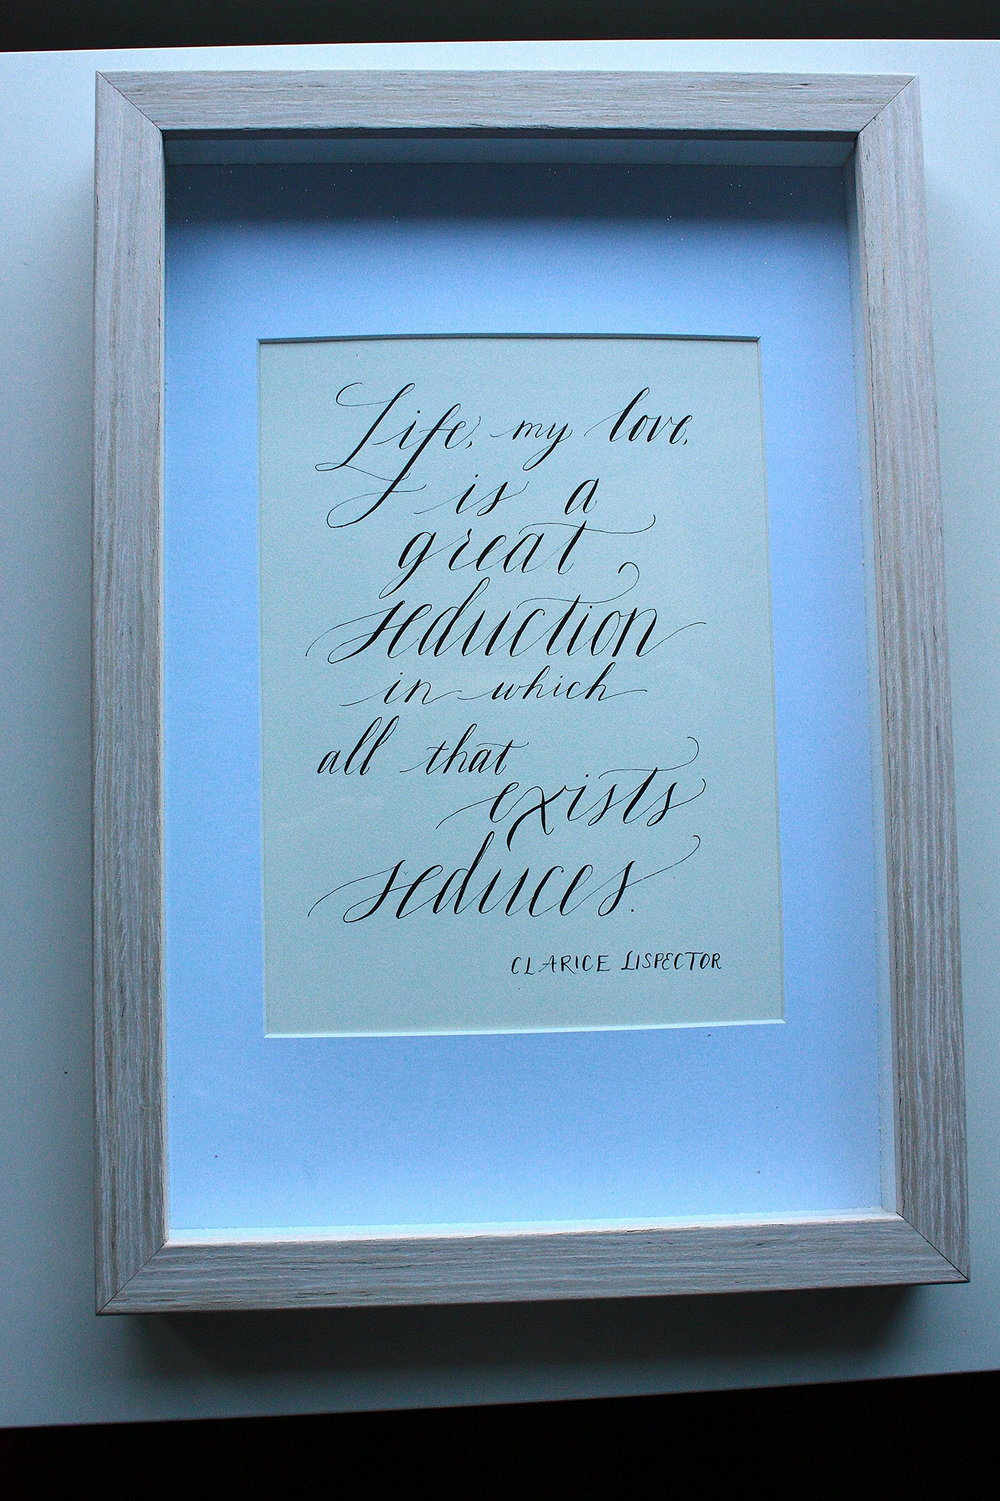 Bluestocking Calligraphy / Calligraphy quote from Clarice Lispector